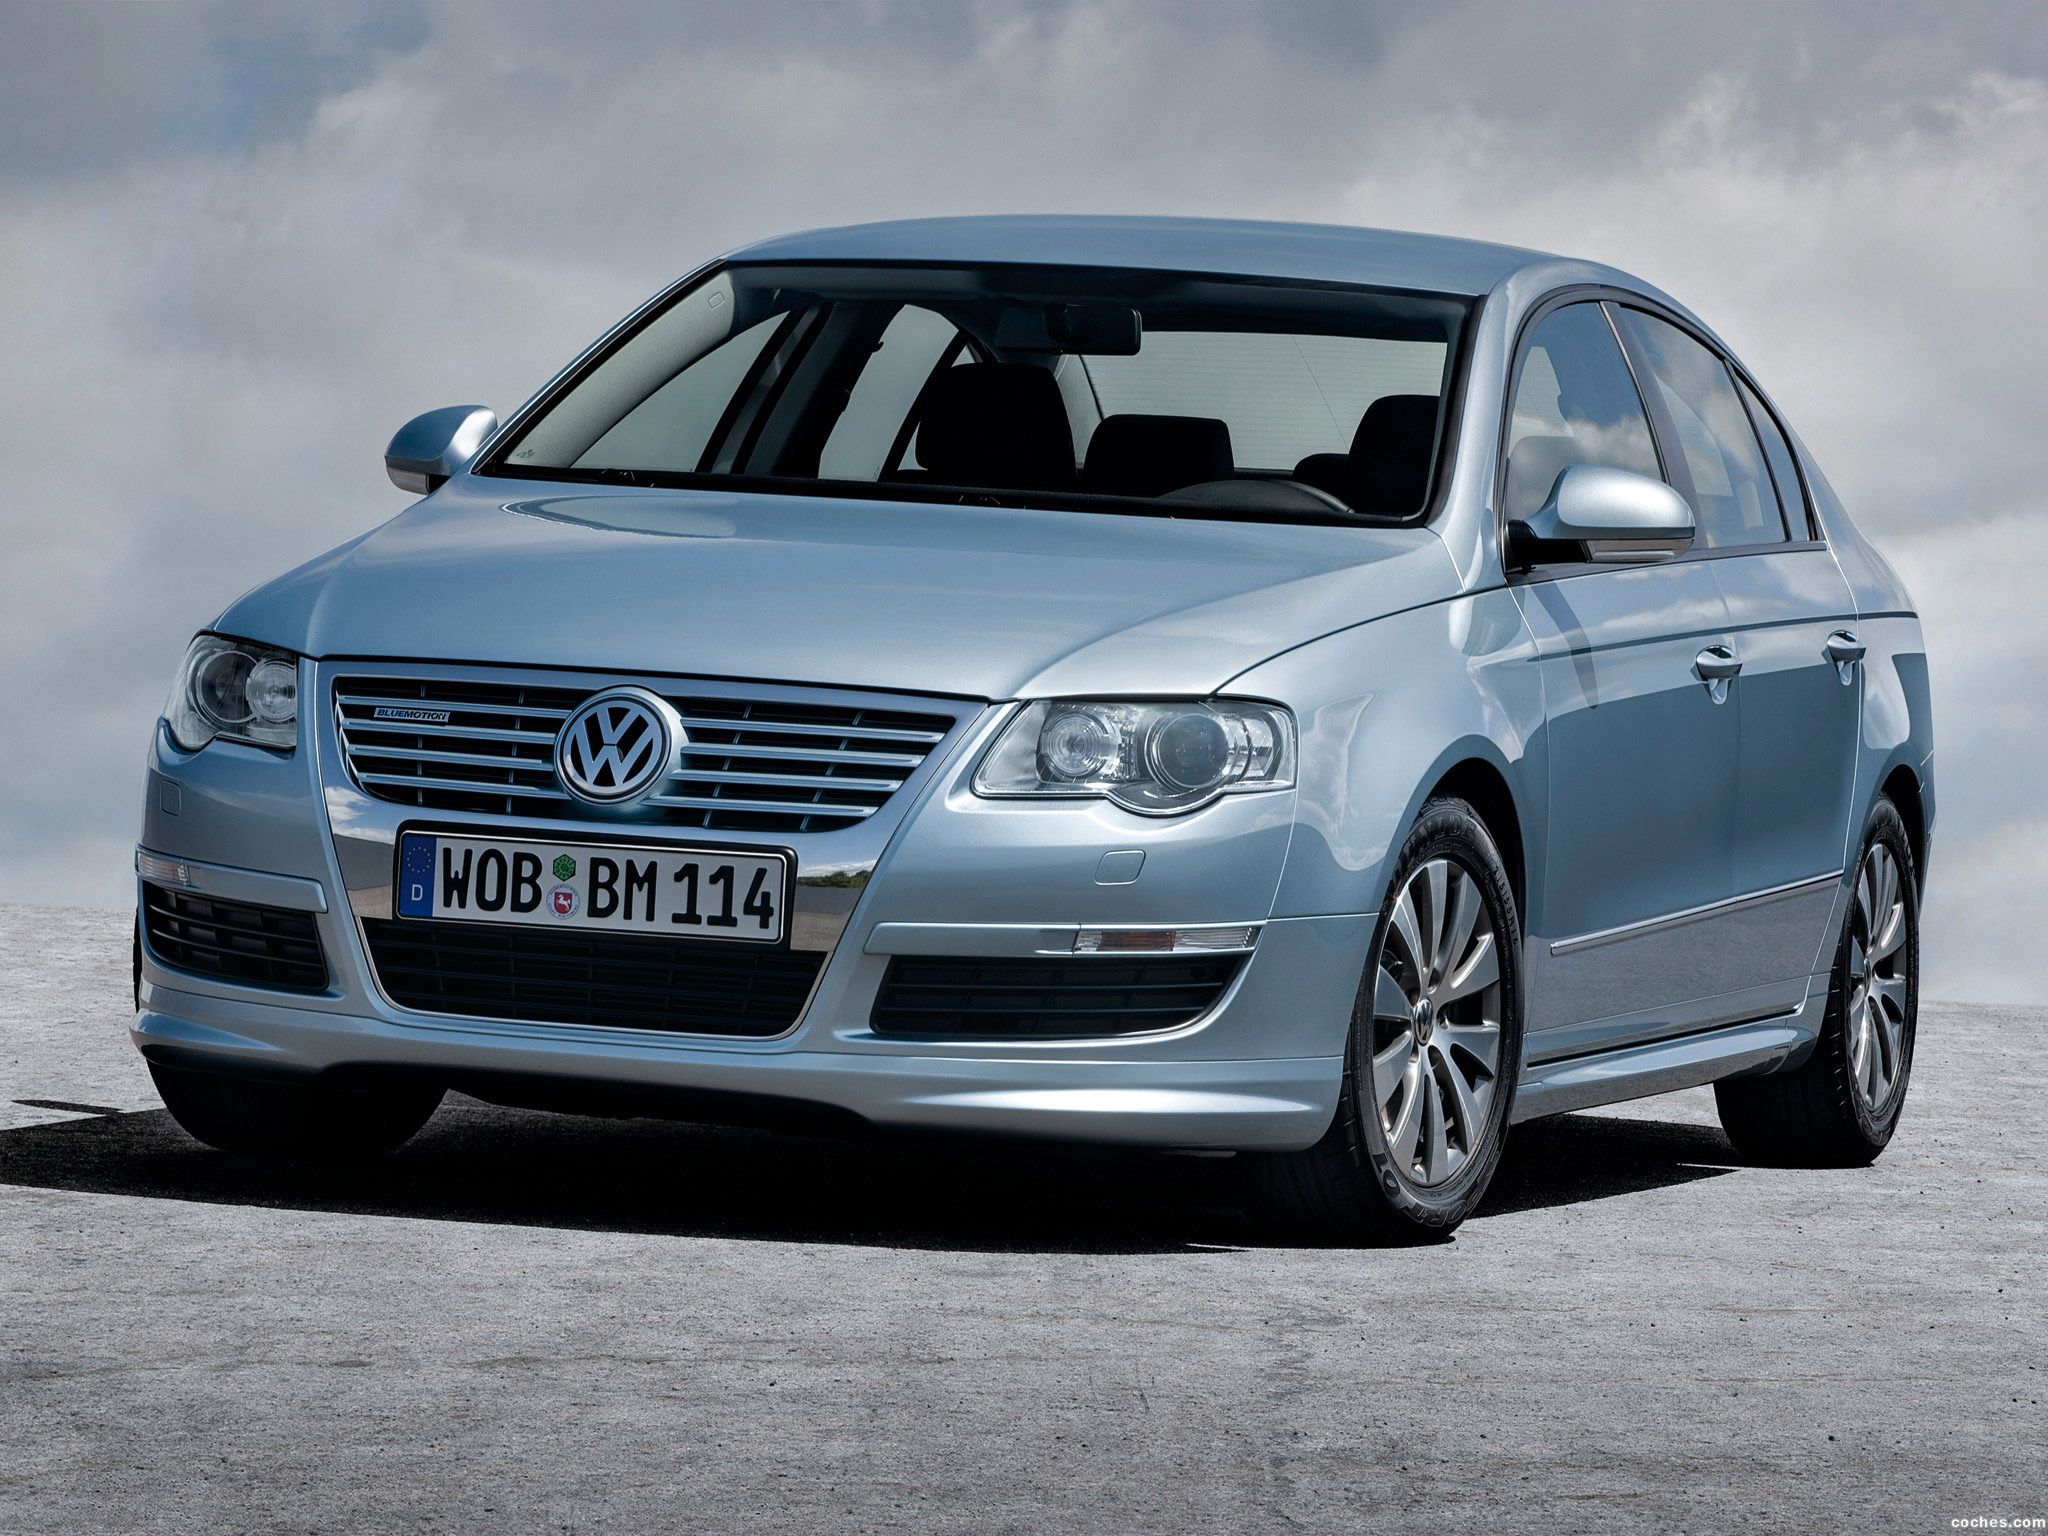 fotos de volkswagen passat bluemotion sedan b6 2009. Black Bedroom Furniture Sets. Home Design Ideas